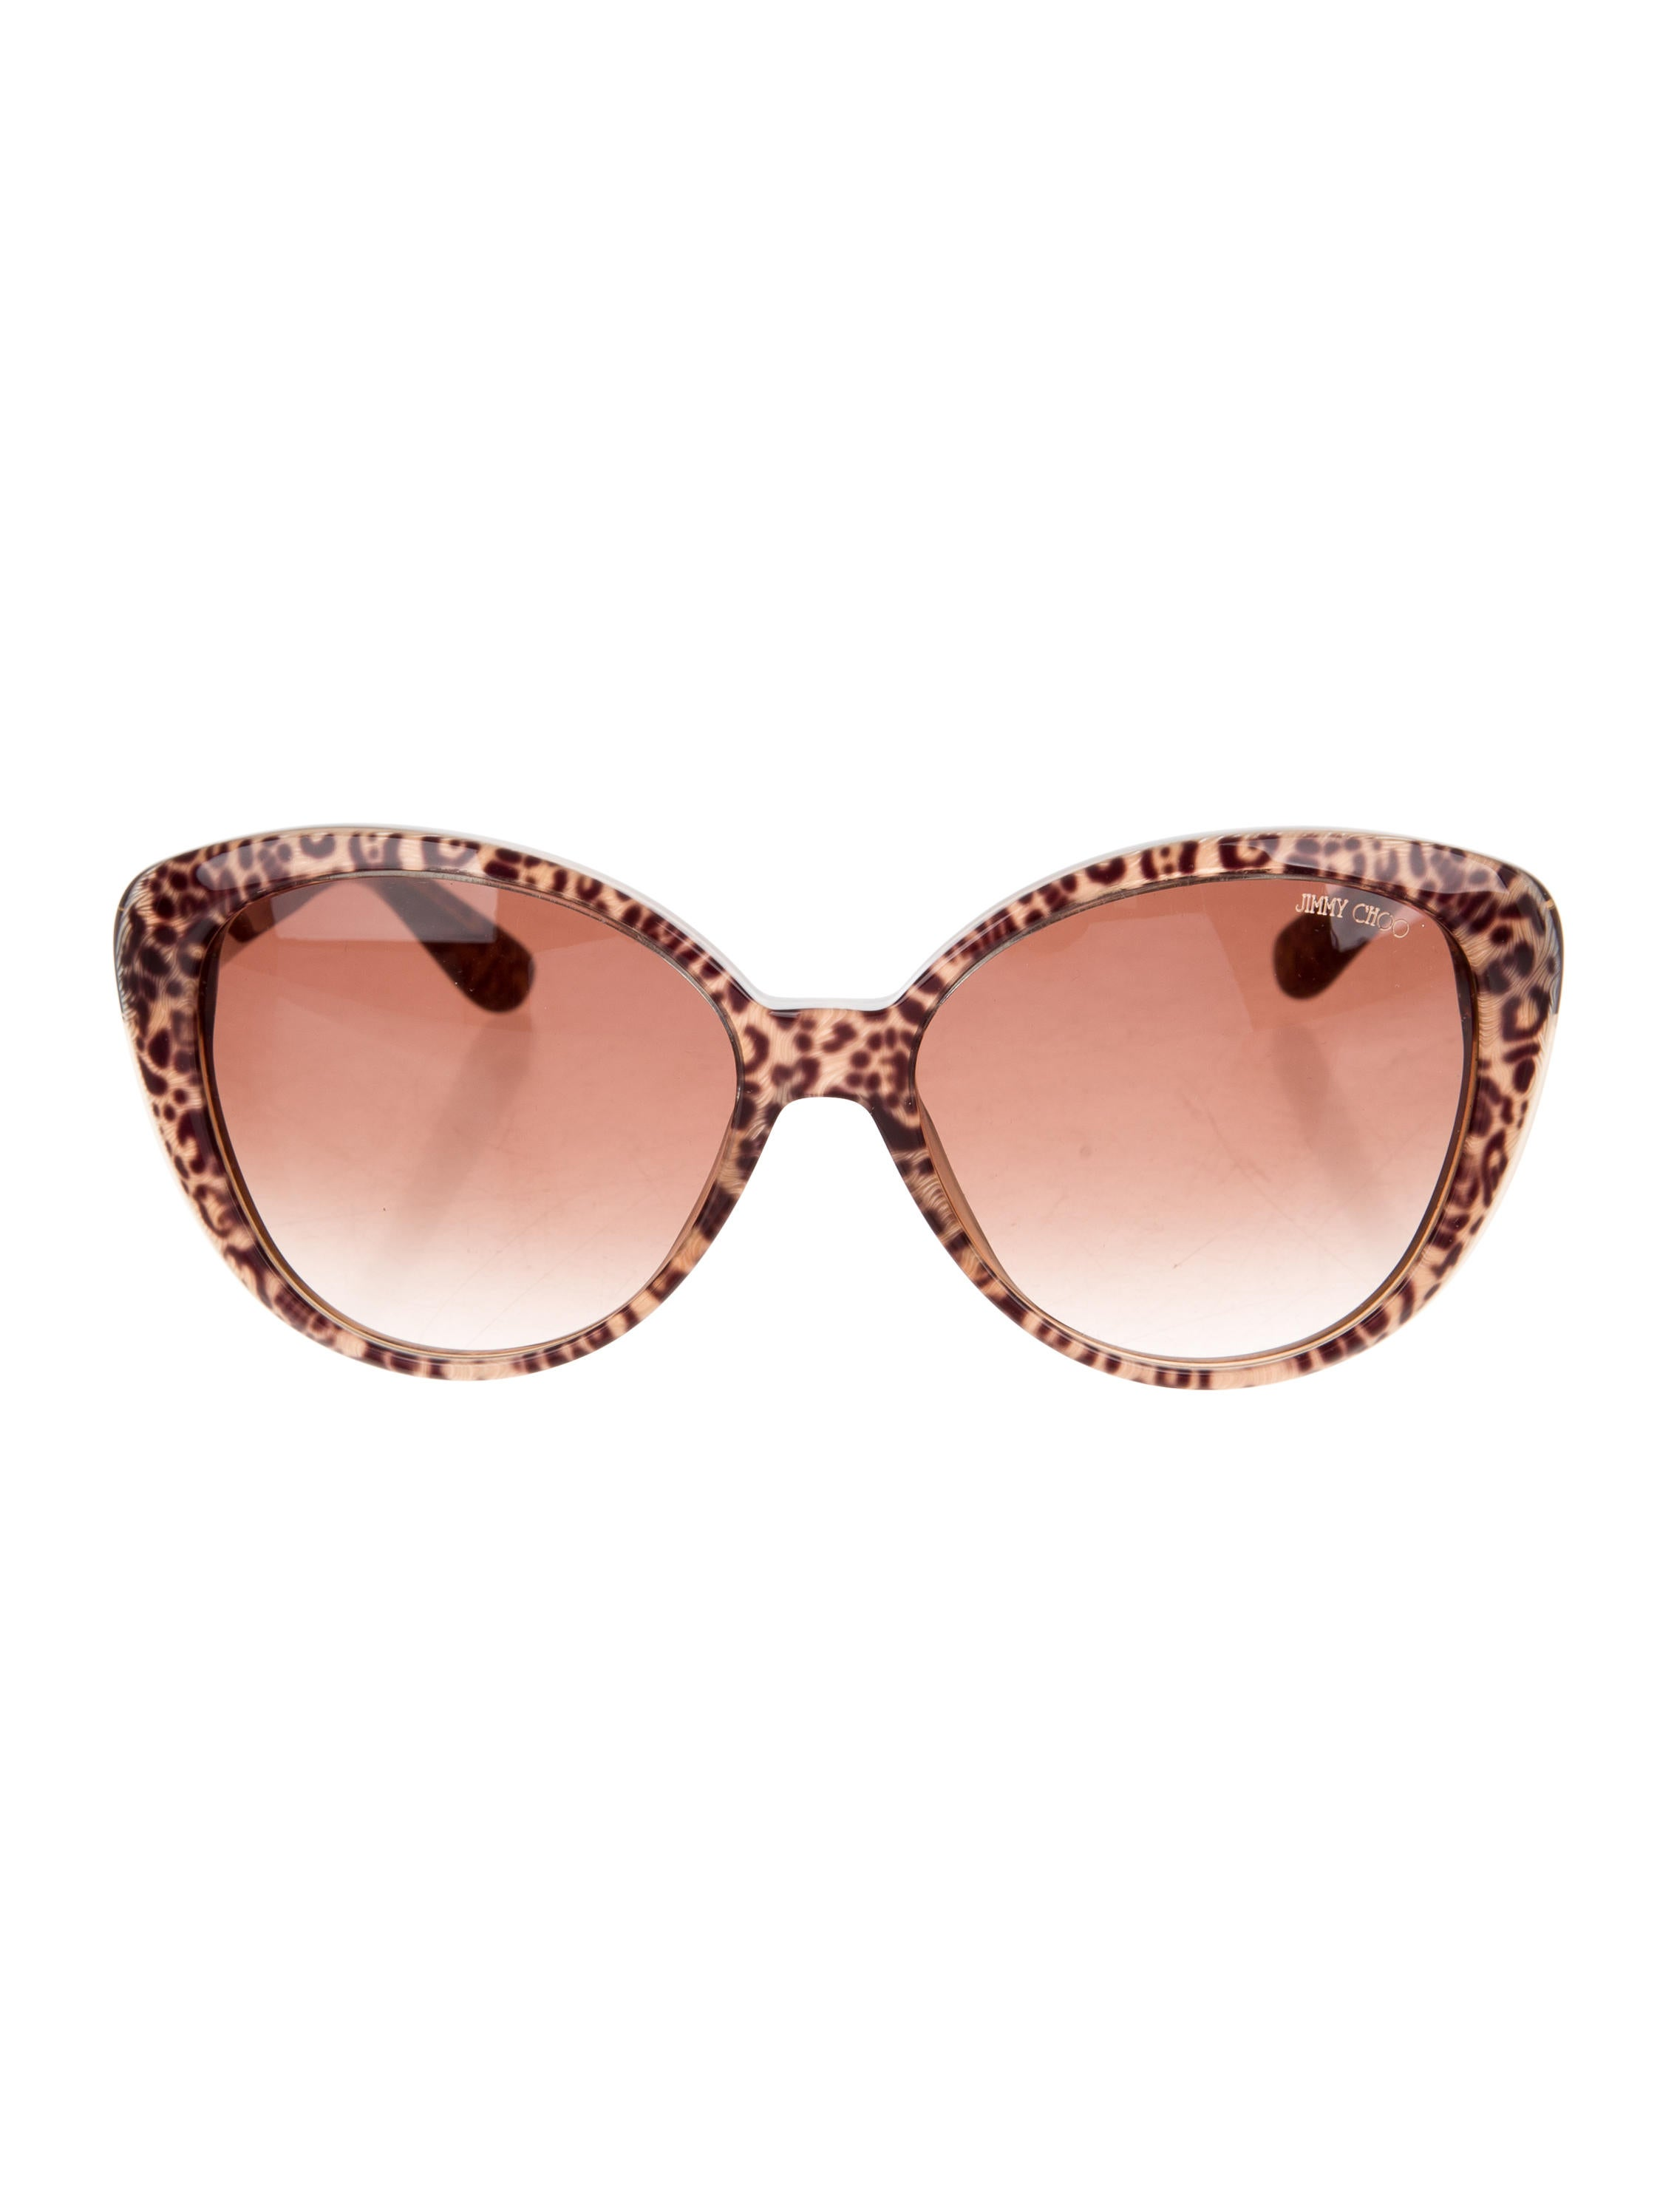 Jimmy Choo Leopard Print Sunglasses